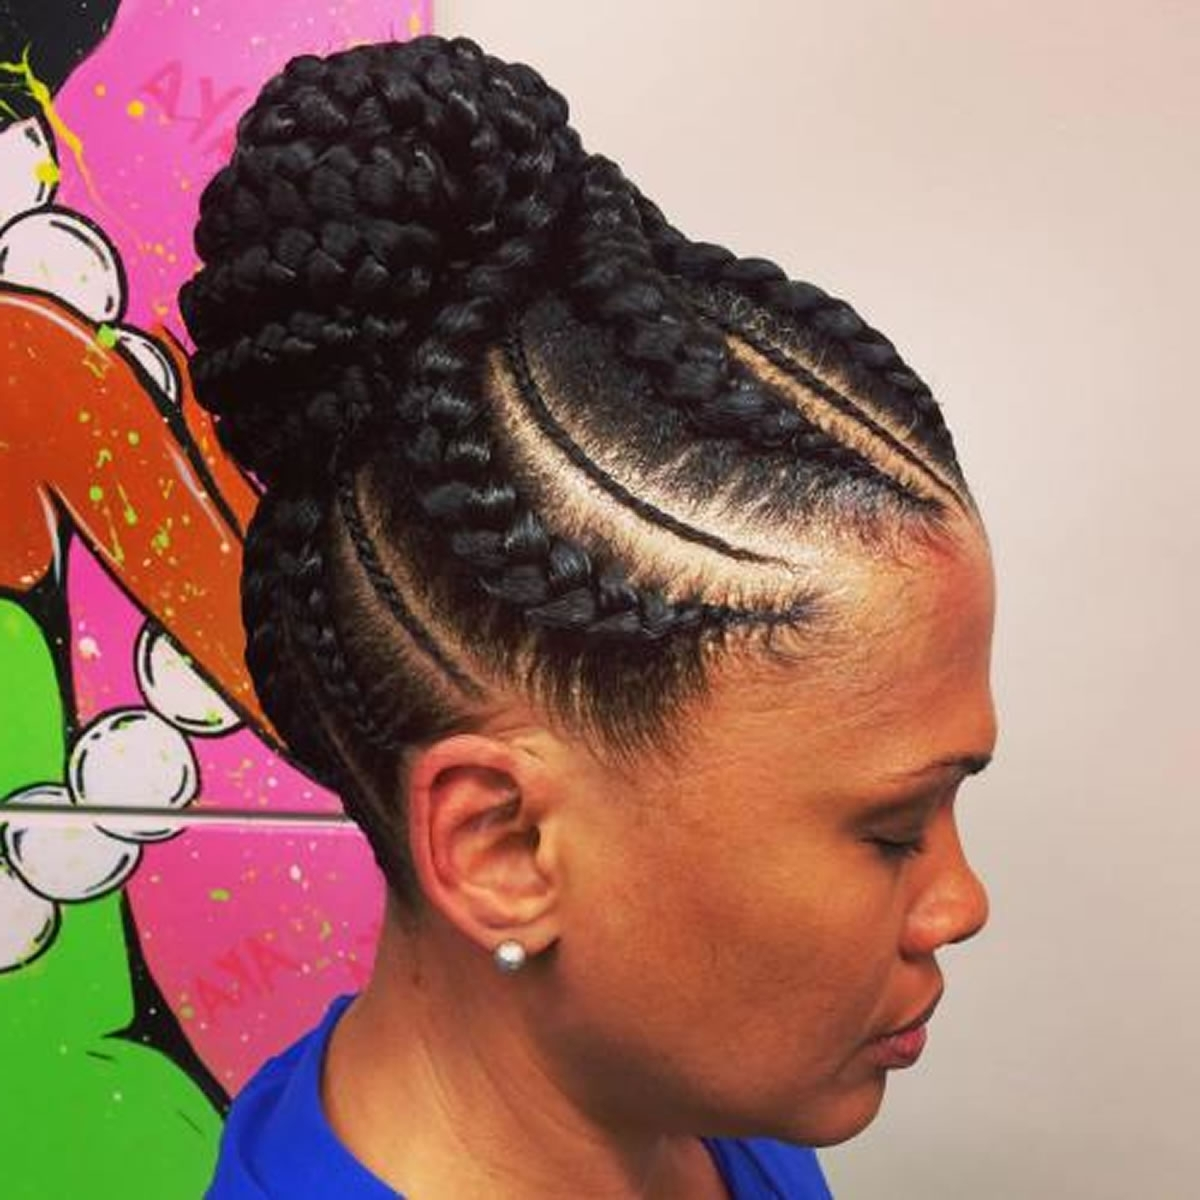 Well Known Braided Hairstyles For Older Ladies Inside 20 Best African American Braided Hairstyles For Women 2017 (View 2 of 15)